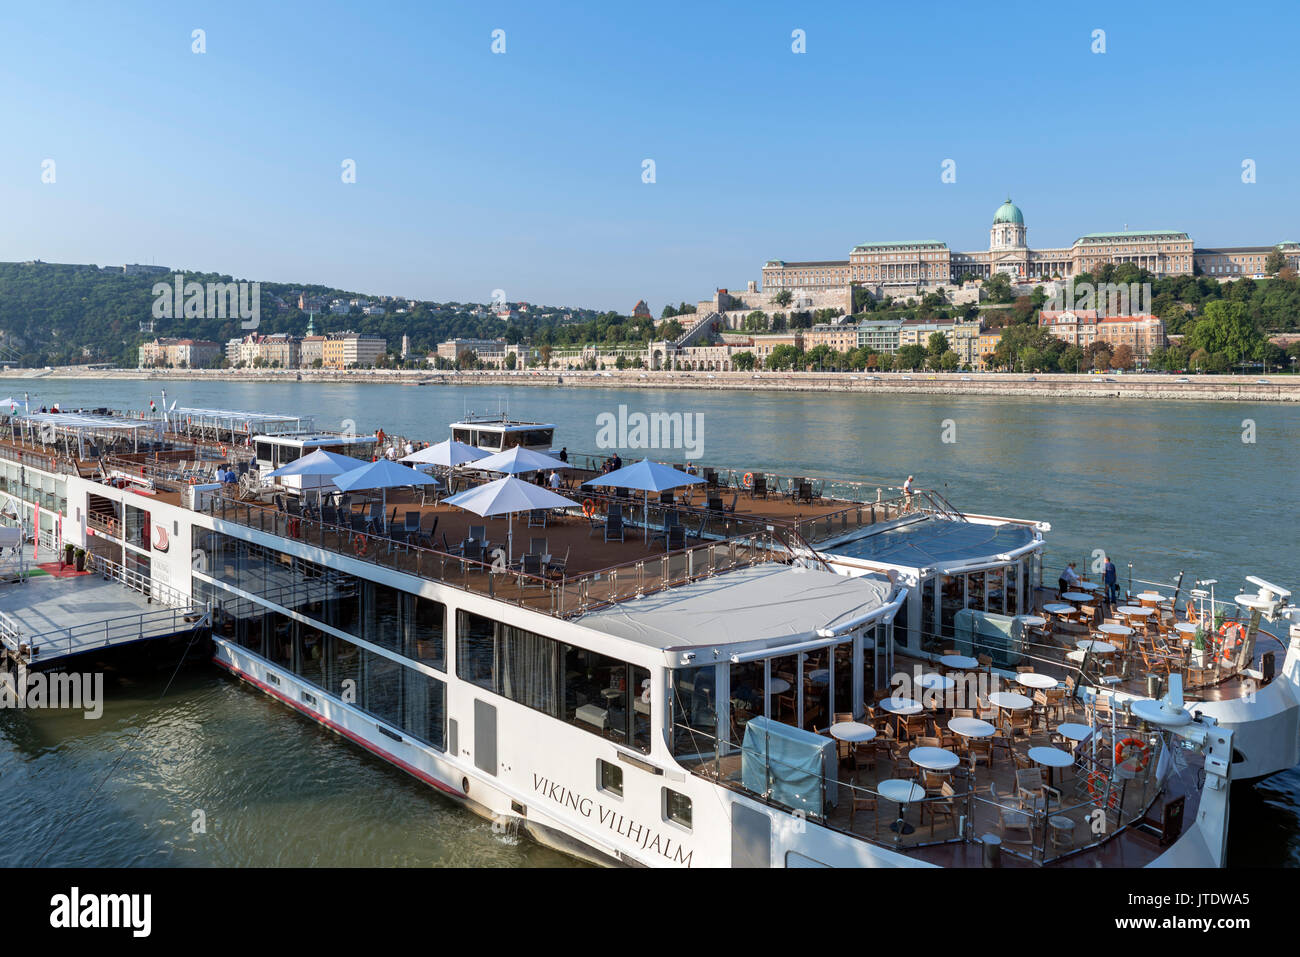 Viking River Cruises cruise boats with The Royal Palace on Castle Hill behind, Budapest, Hungary - Stock Image